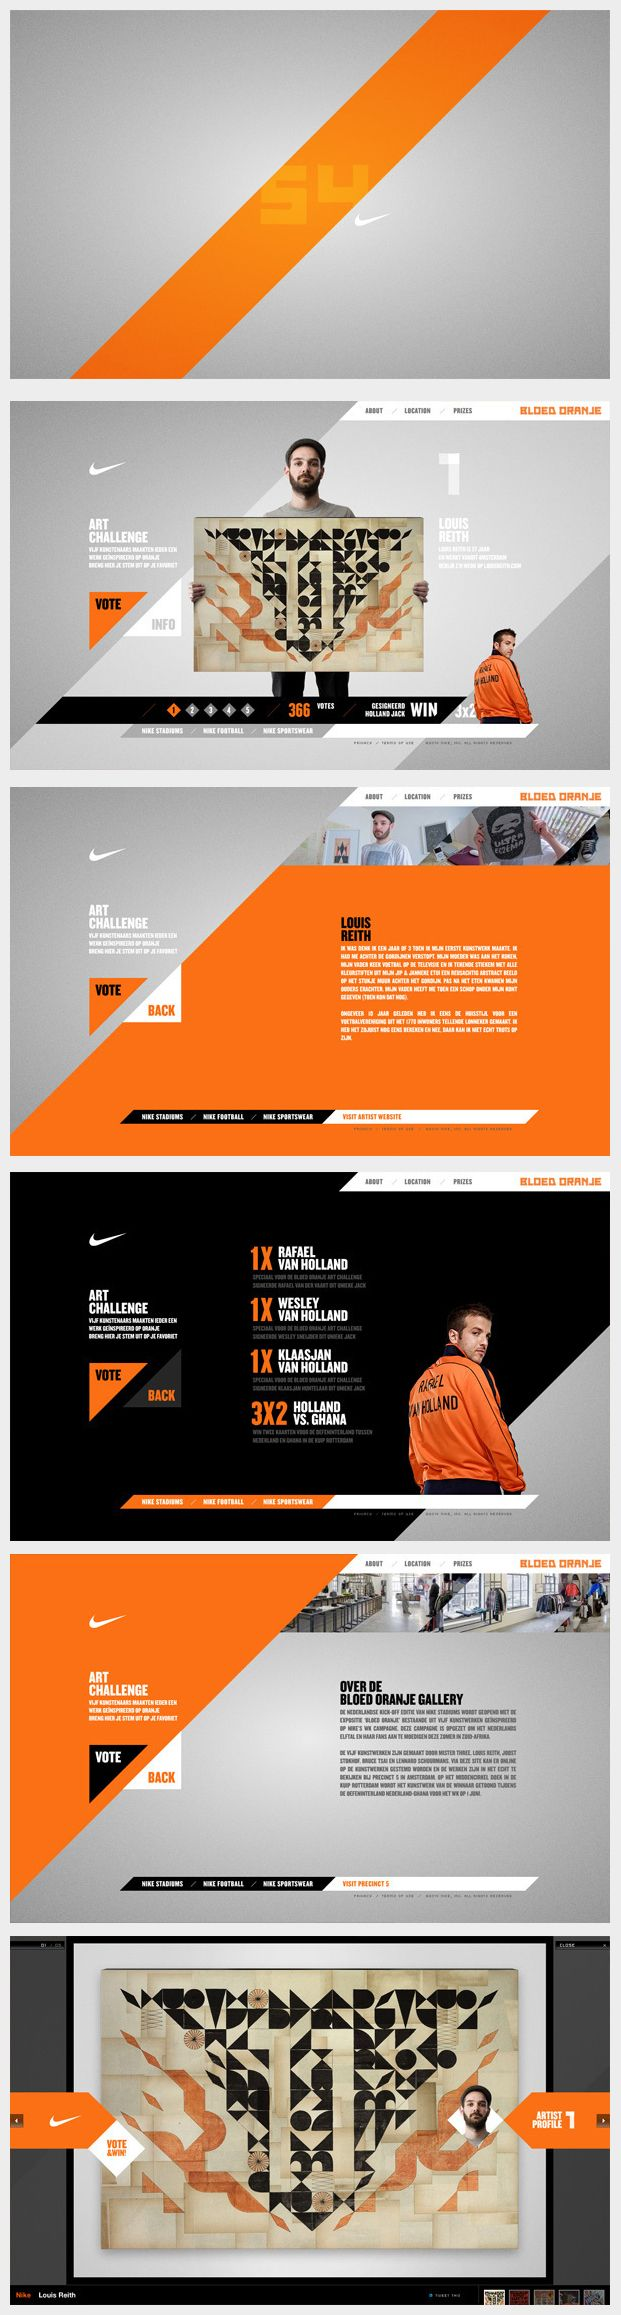 Cool Web Design on the Internet. Nike website. #webdesign #webdevelopment #website